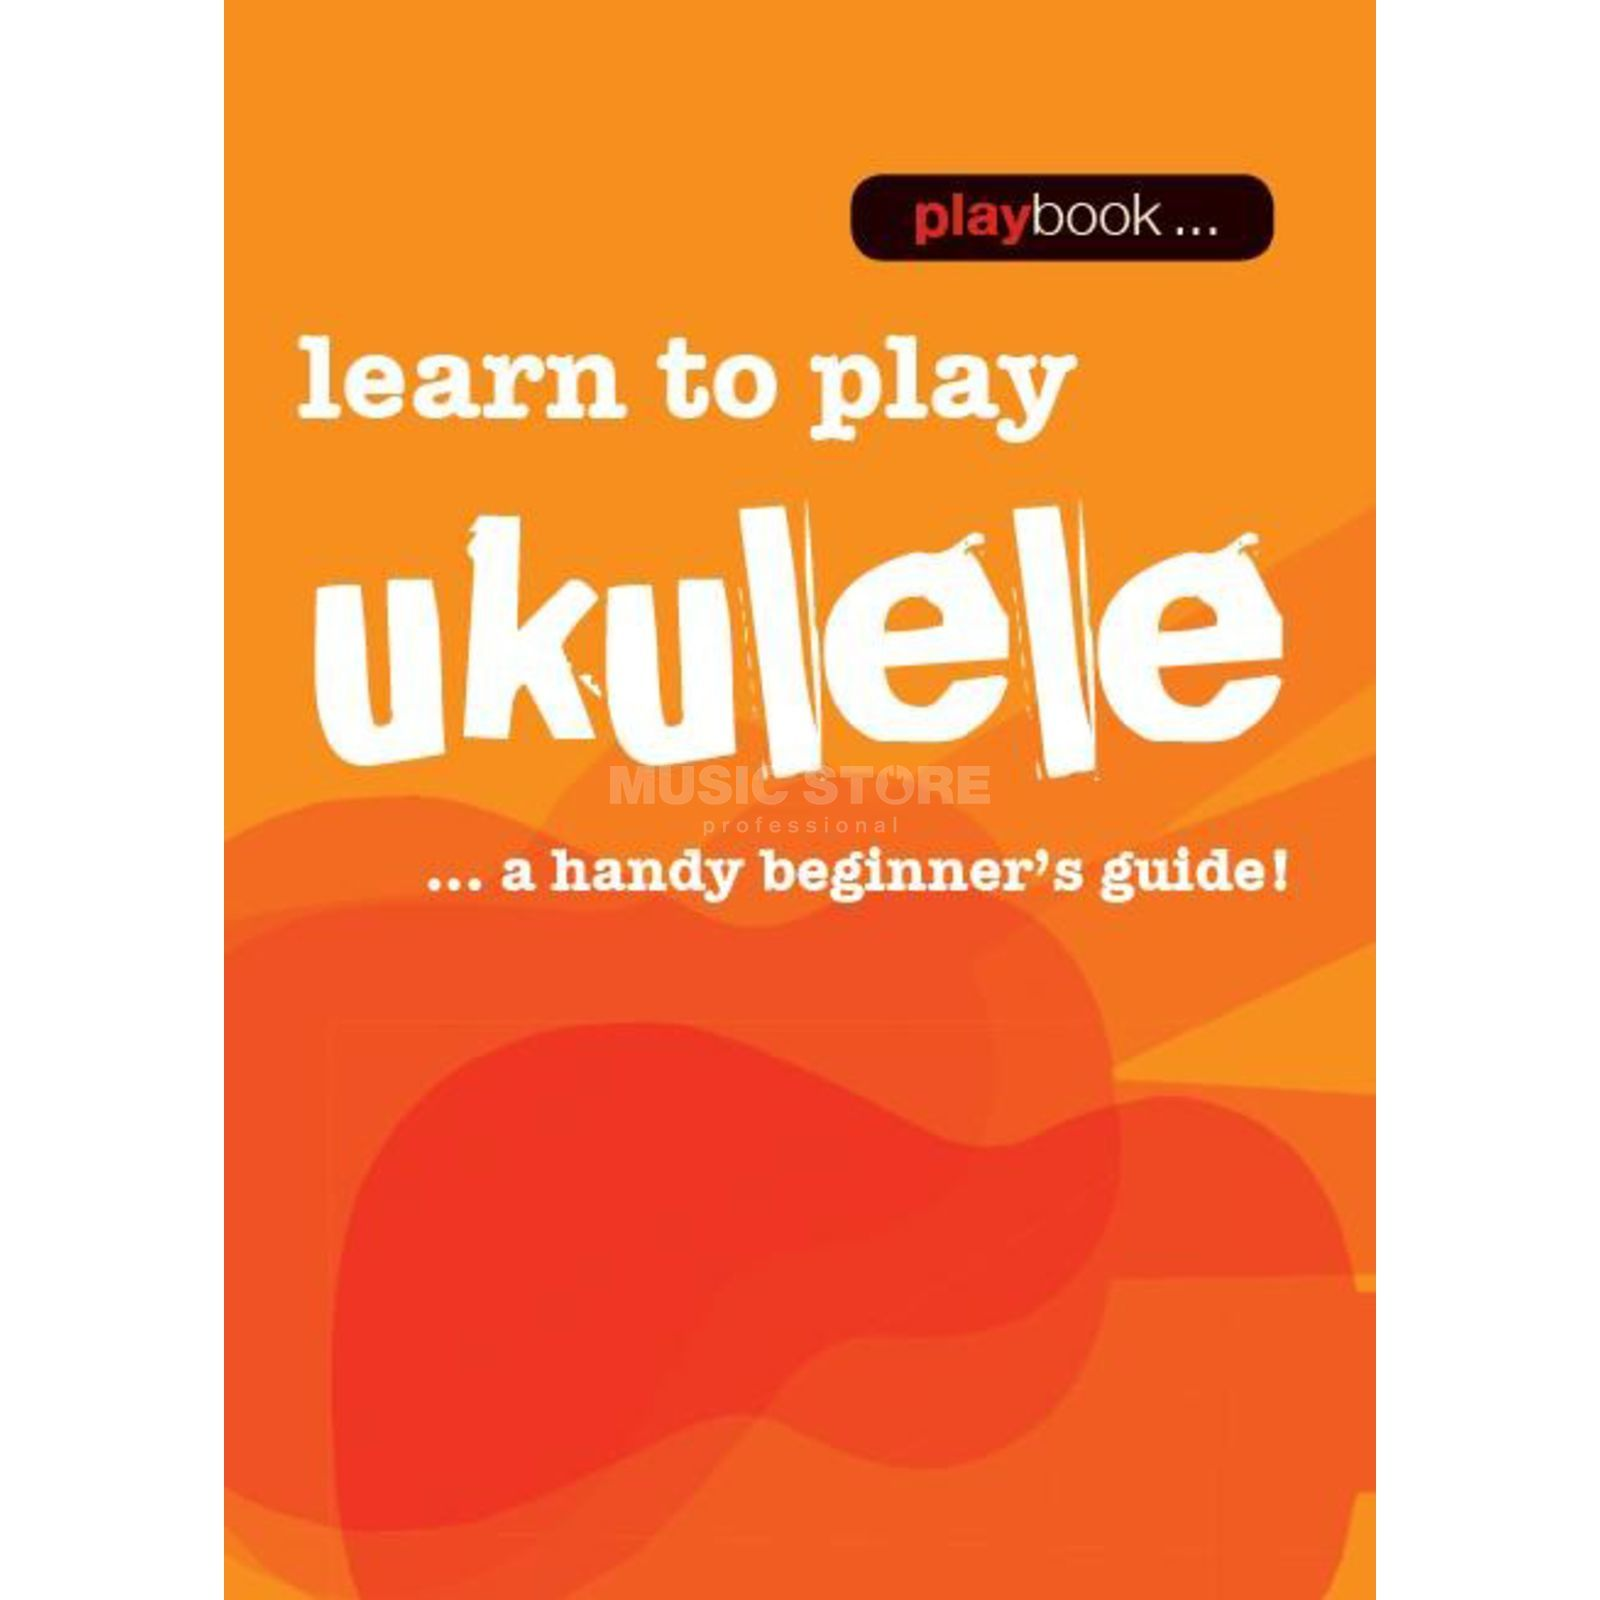 Wise Publications Playbook: Learn To Play Ukulele A Handy Beginner's Guide! Produktbillede